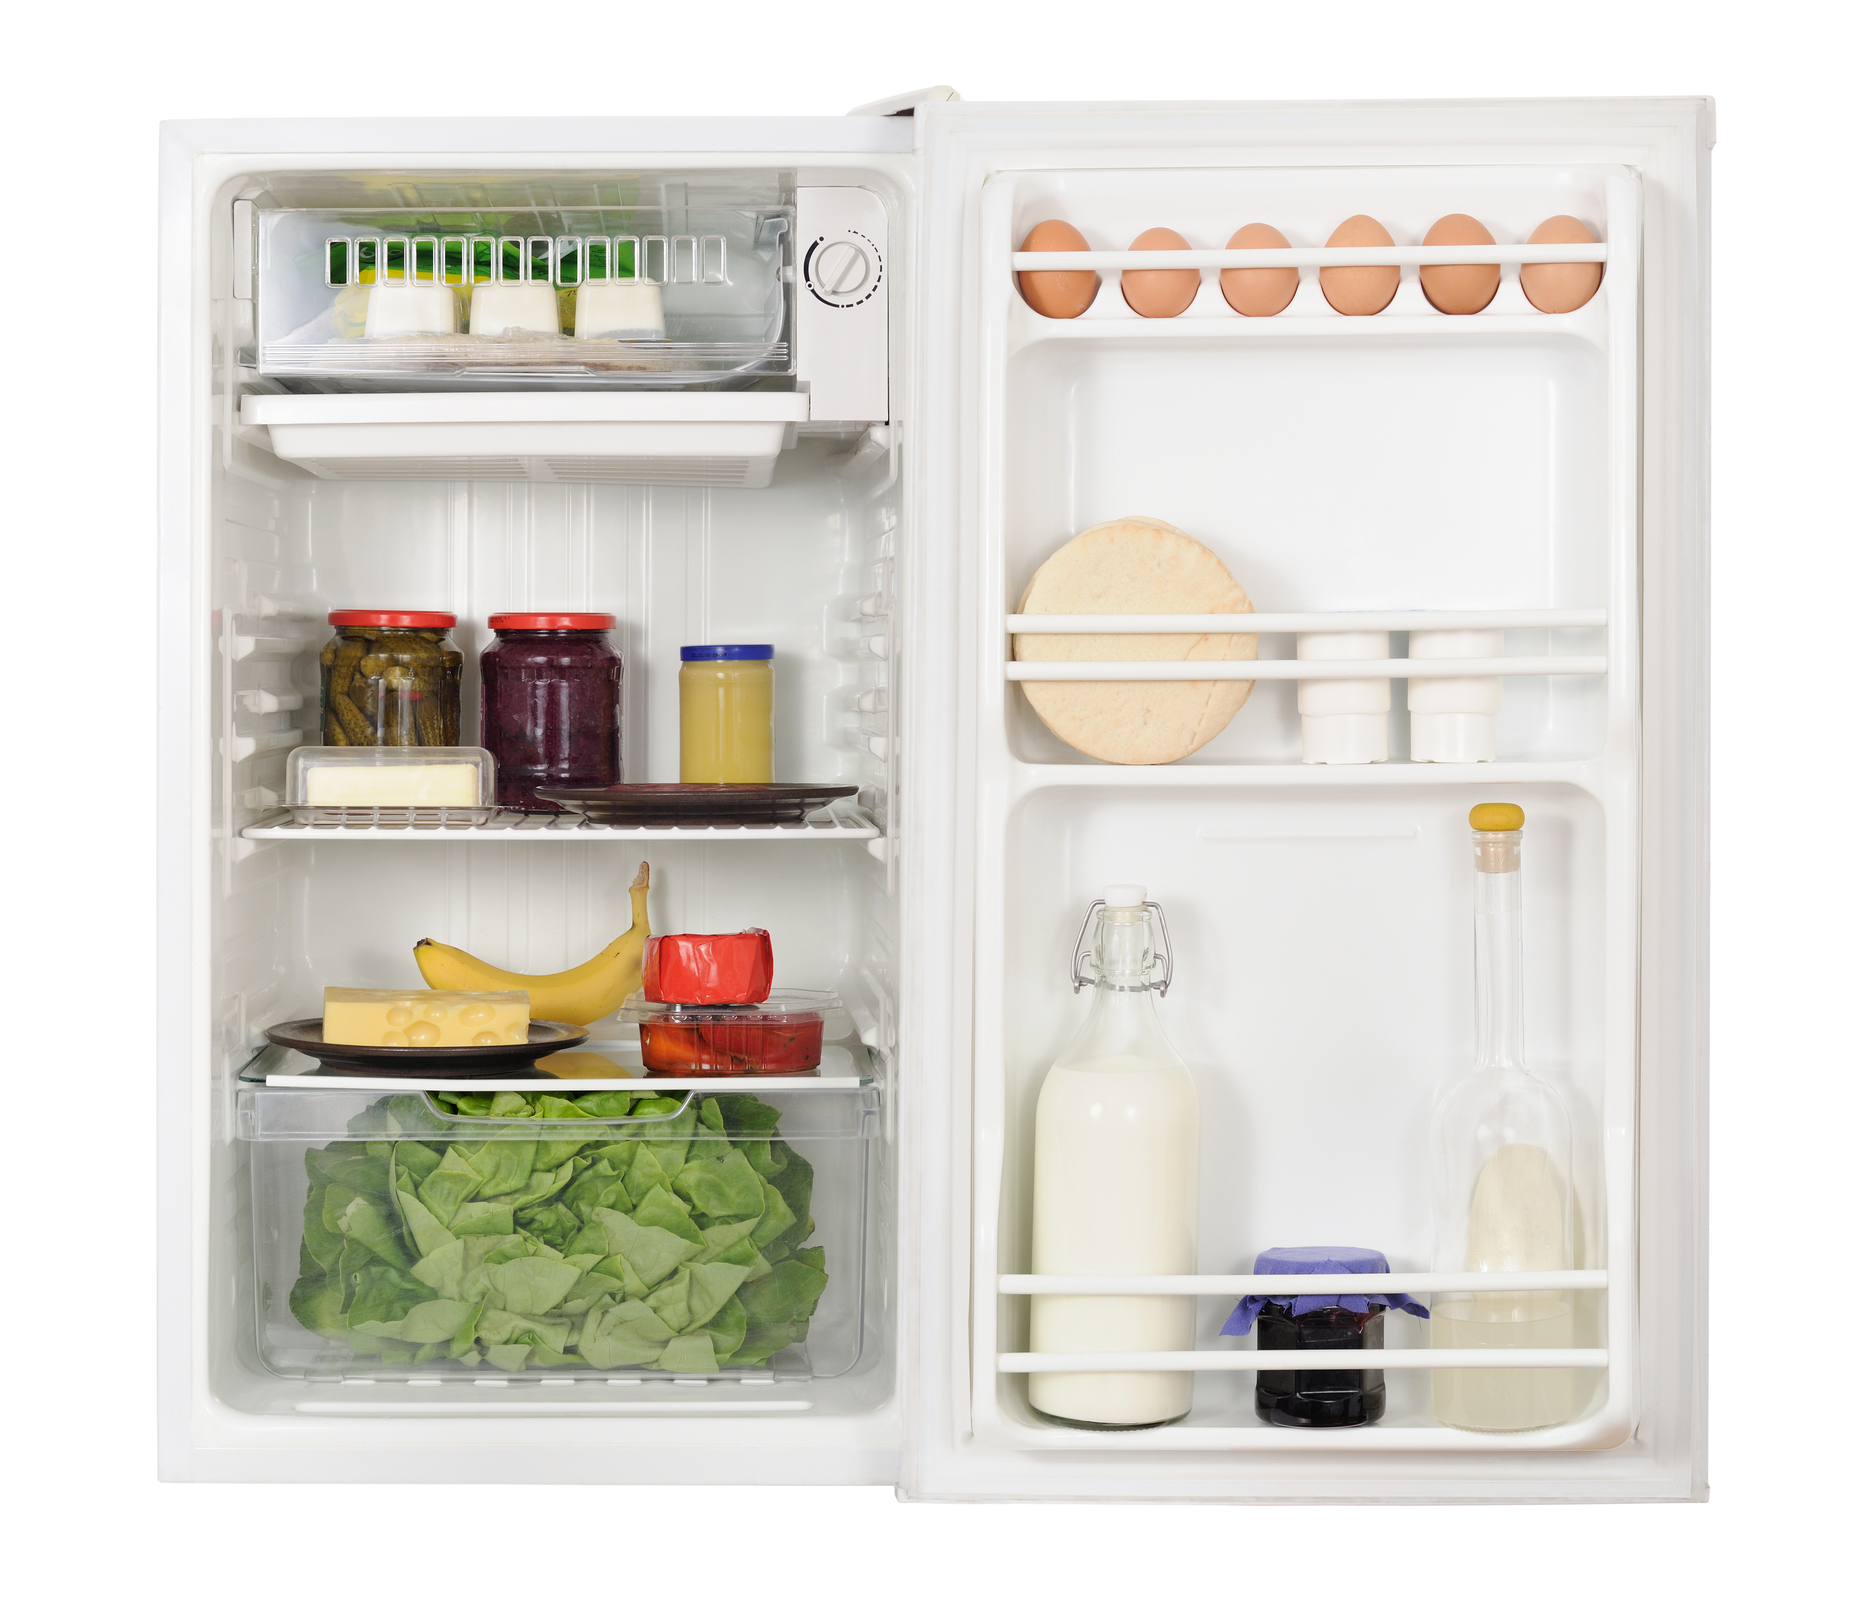 What Does Your Acupuncturist Eat? A Look Inside Kymberly's Refrigerator